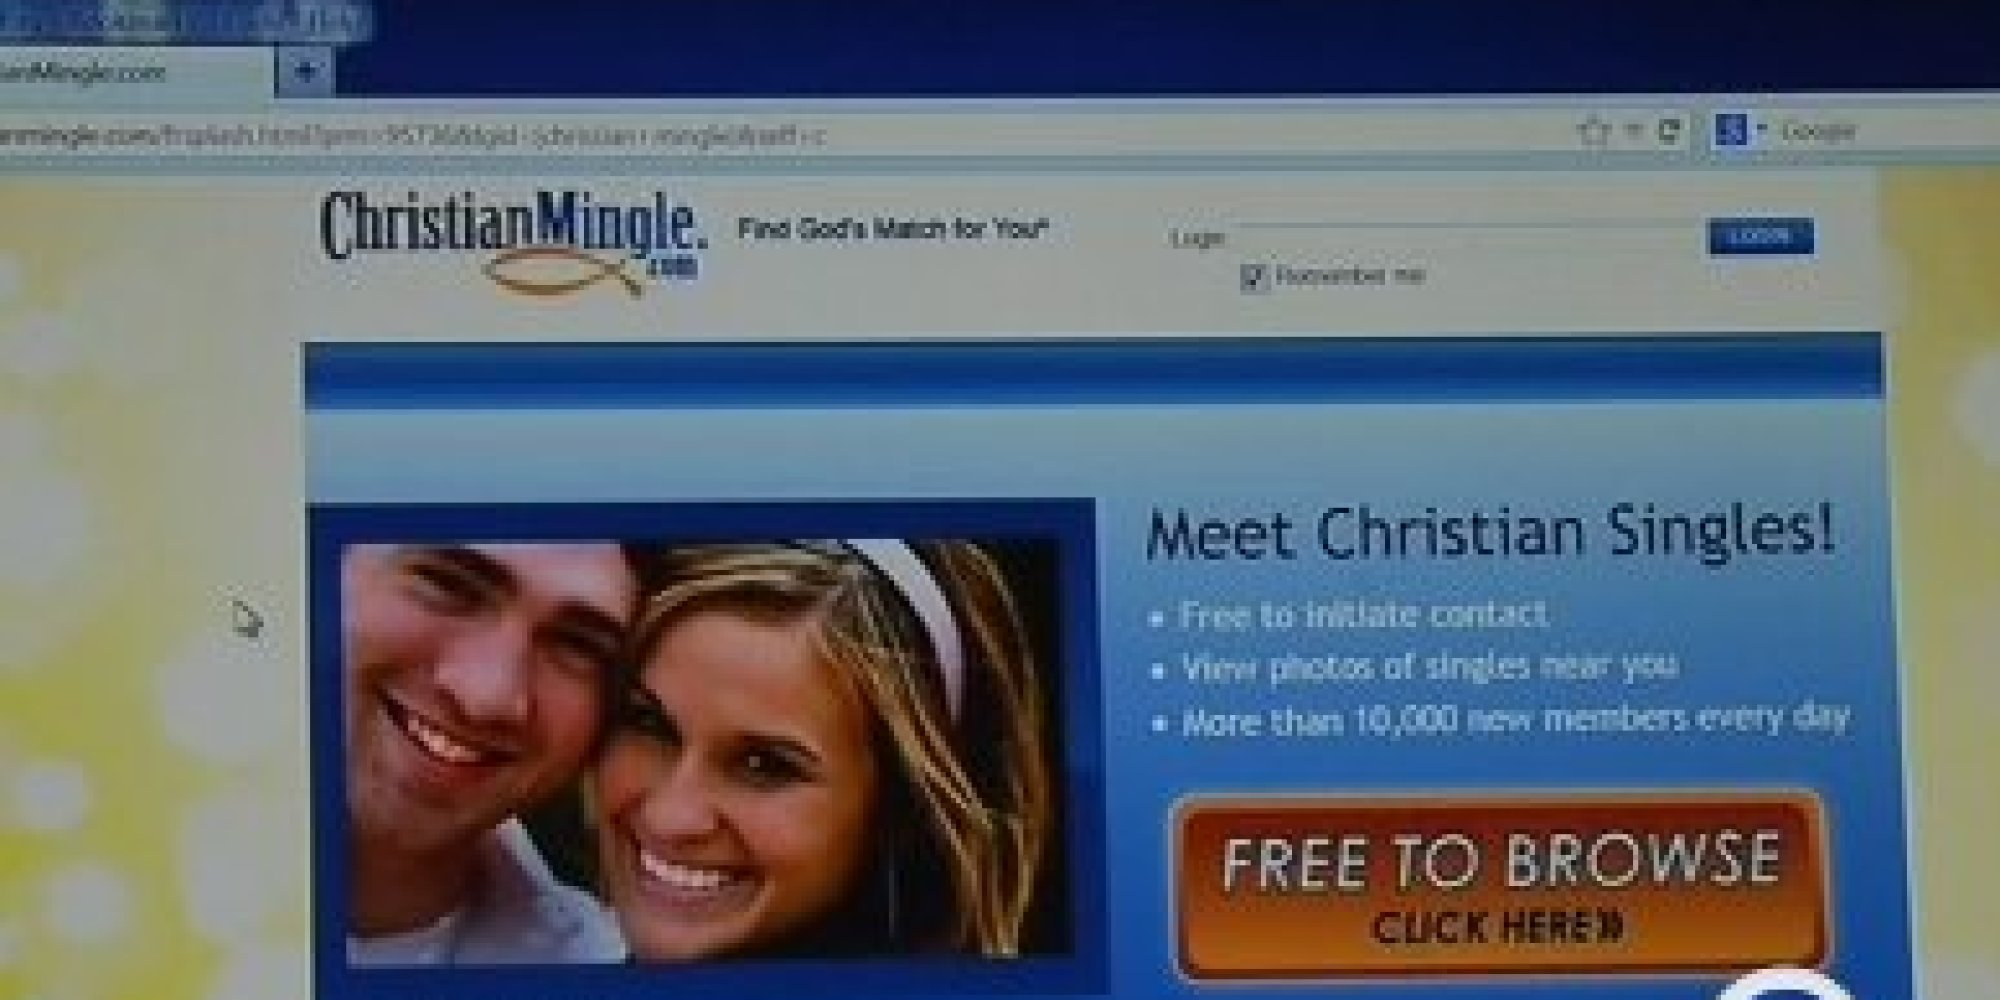 Christian dating site scams 2019